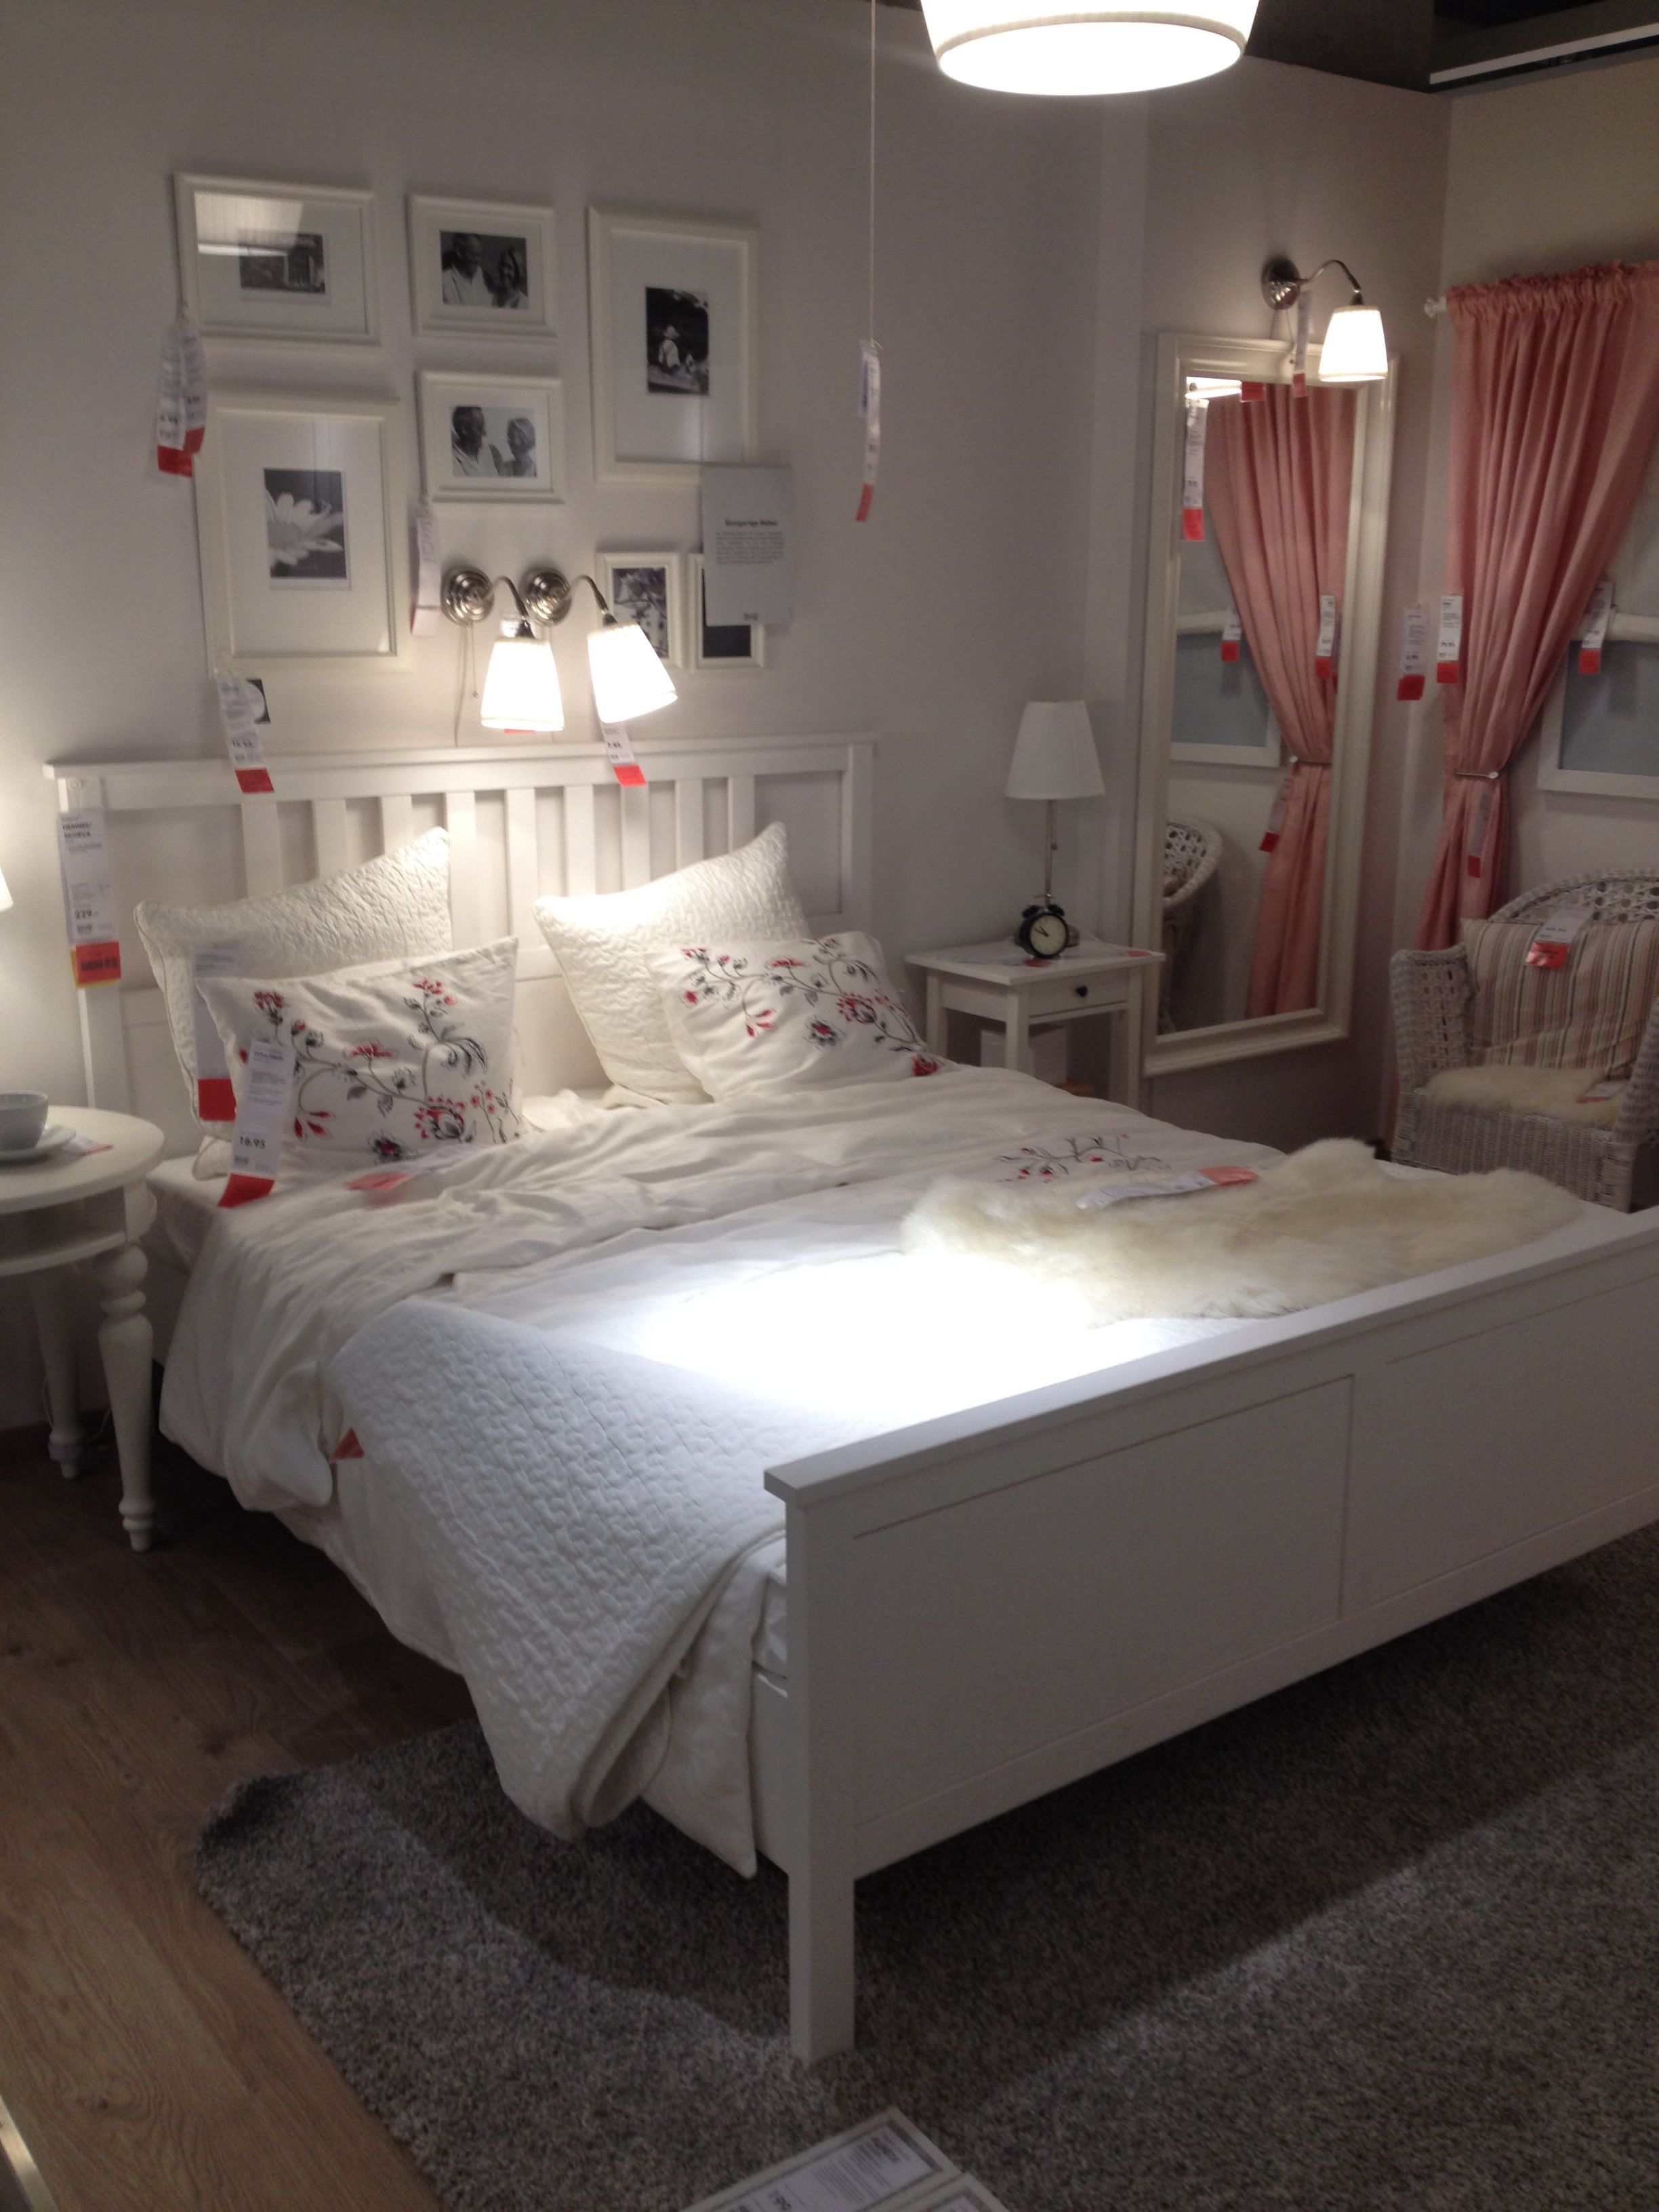 Hemnes Wohnzimmer Ideen White Ikea Hemnes Bed Next Project Спальня Pinterest